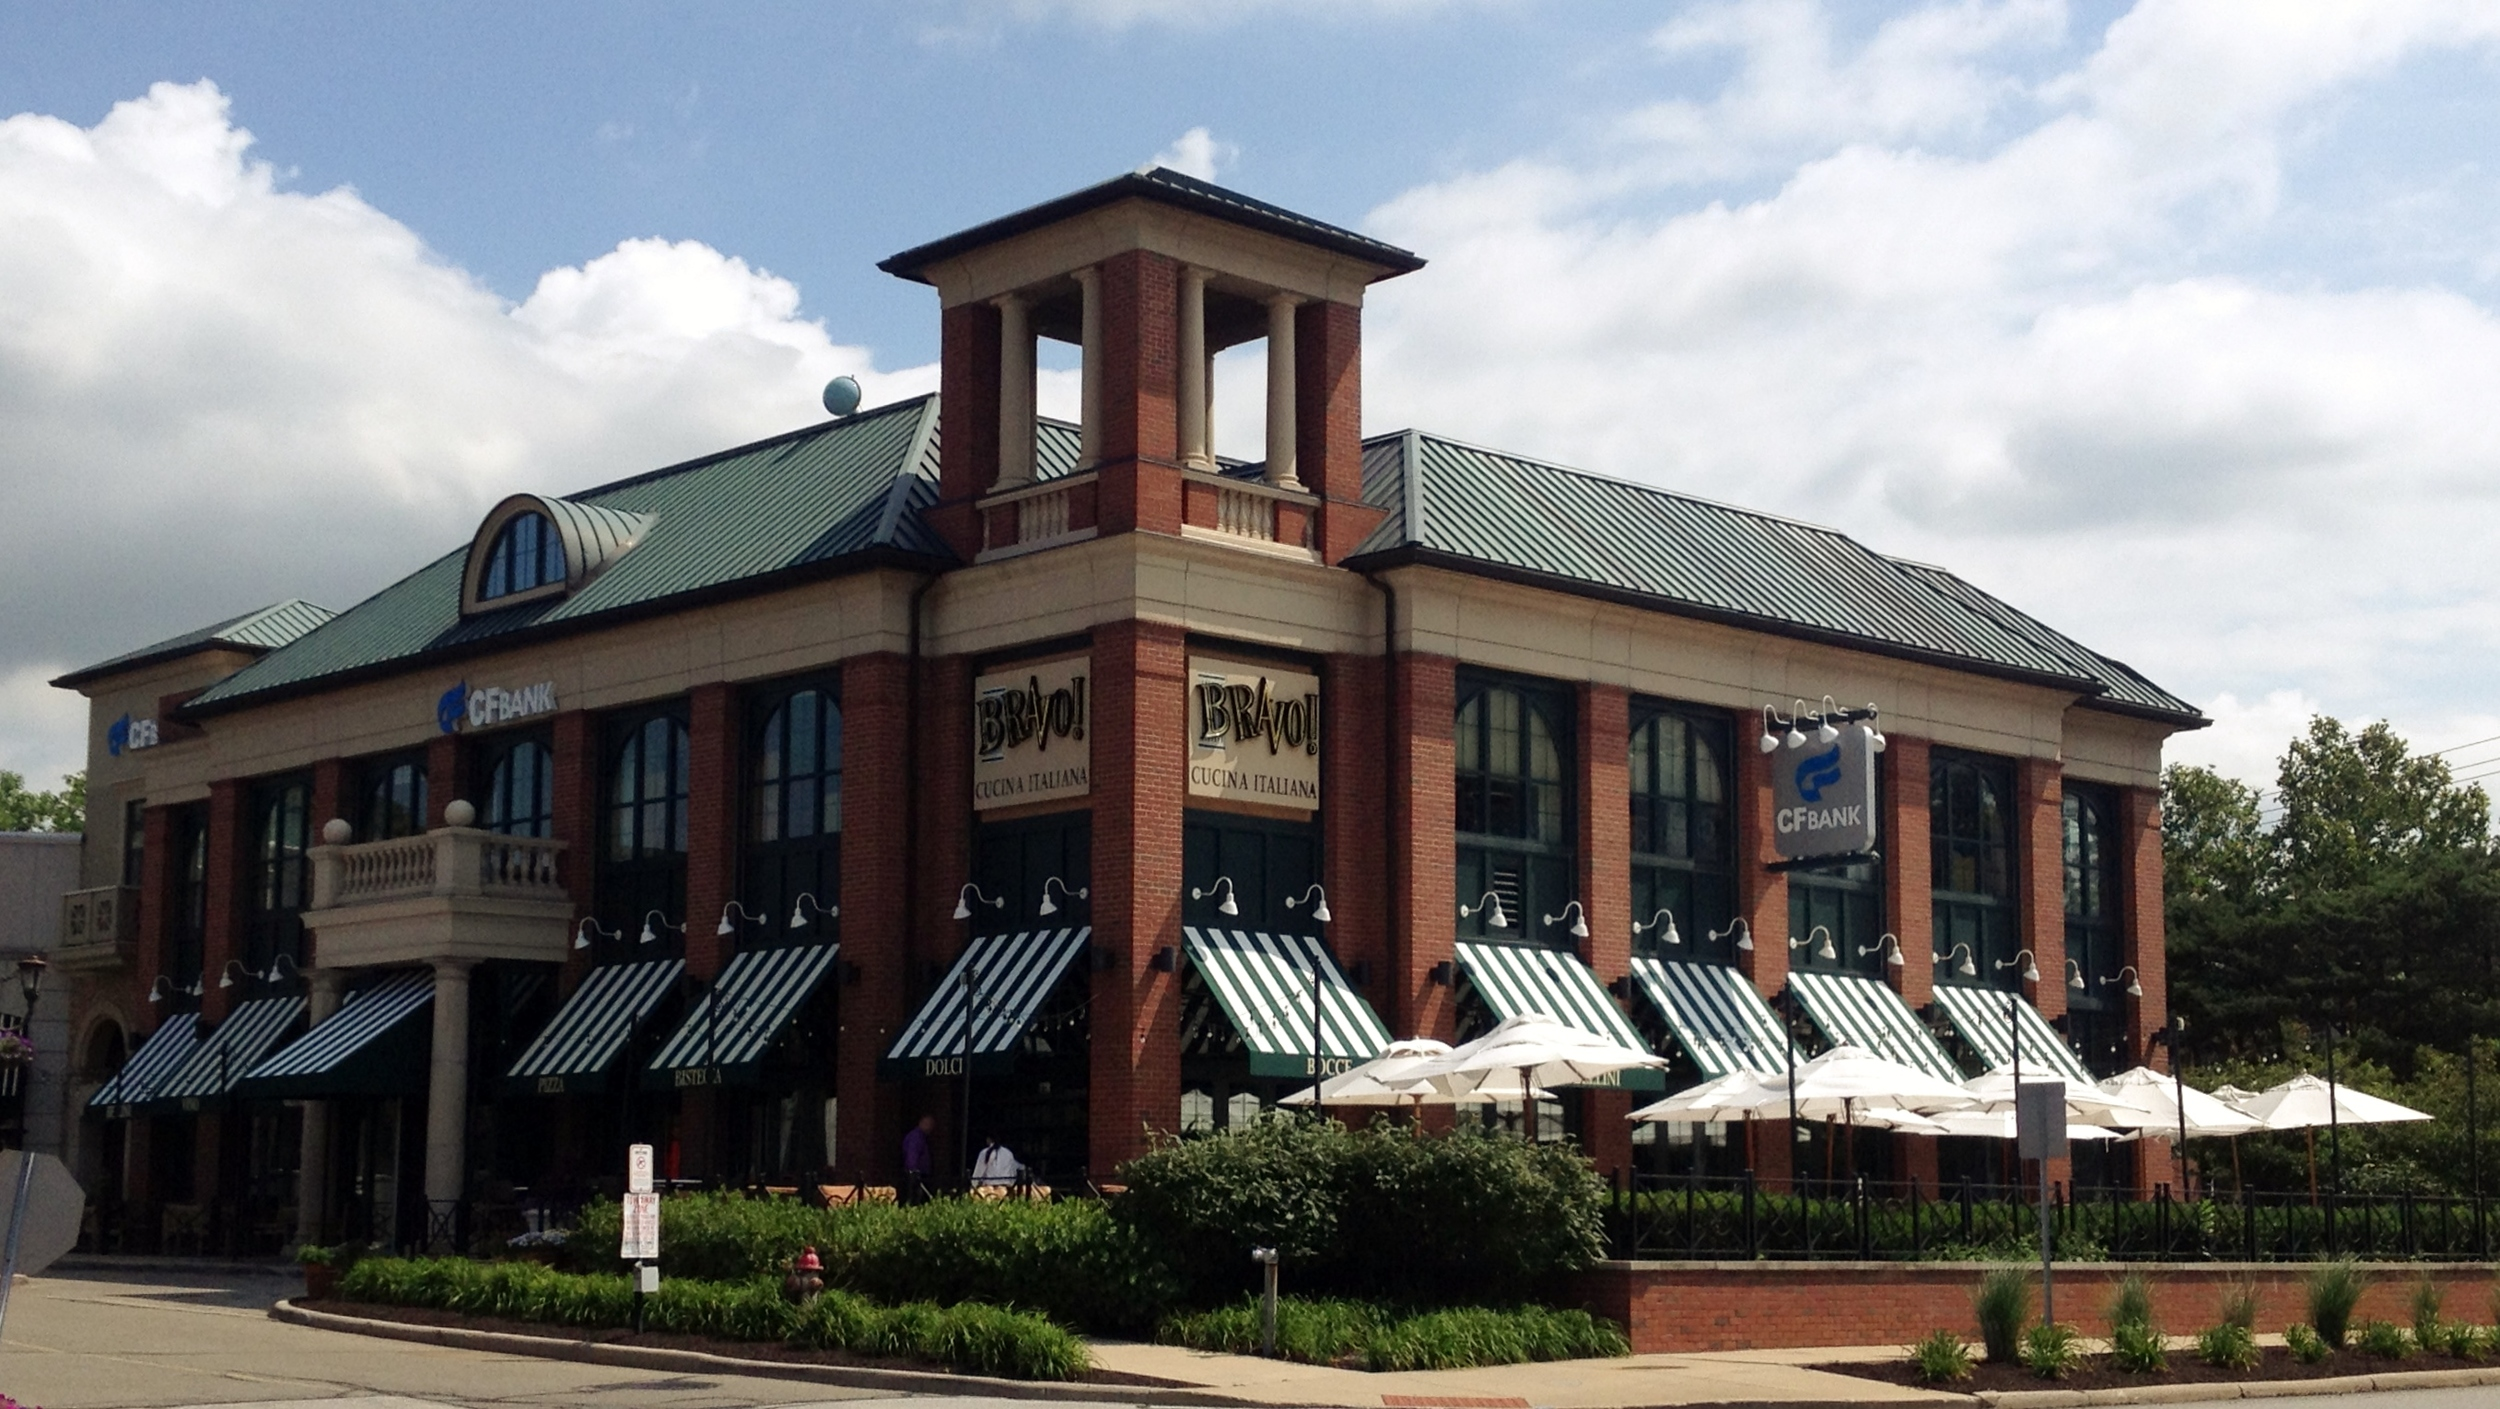 Commercial Storefront Awnings